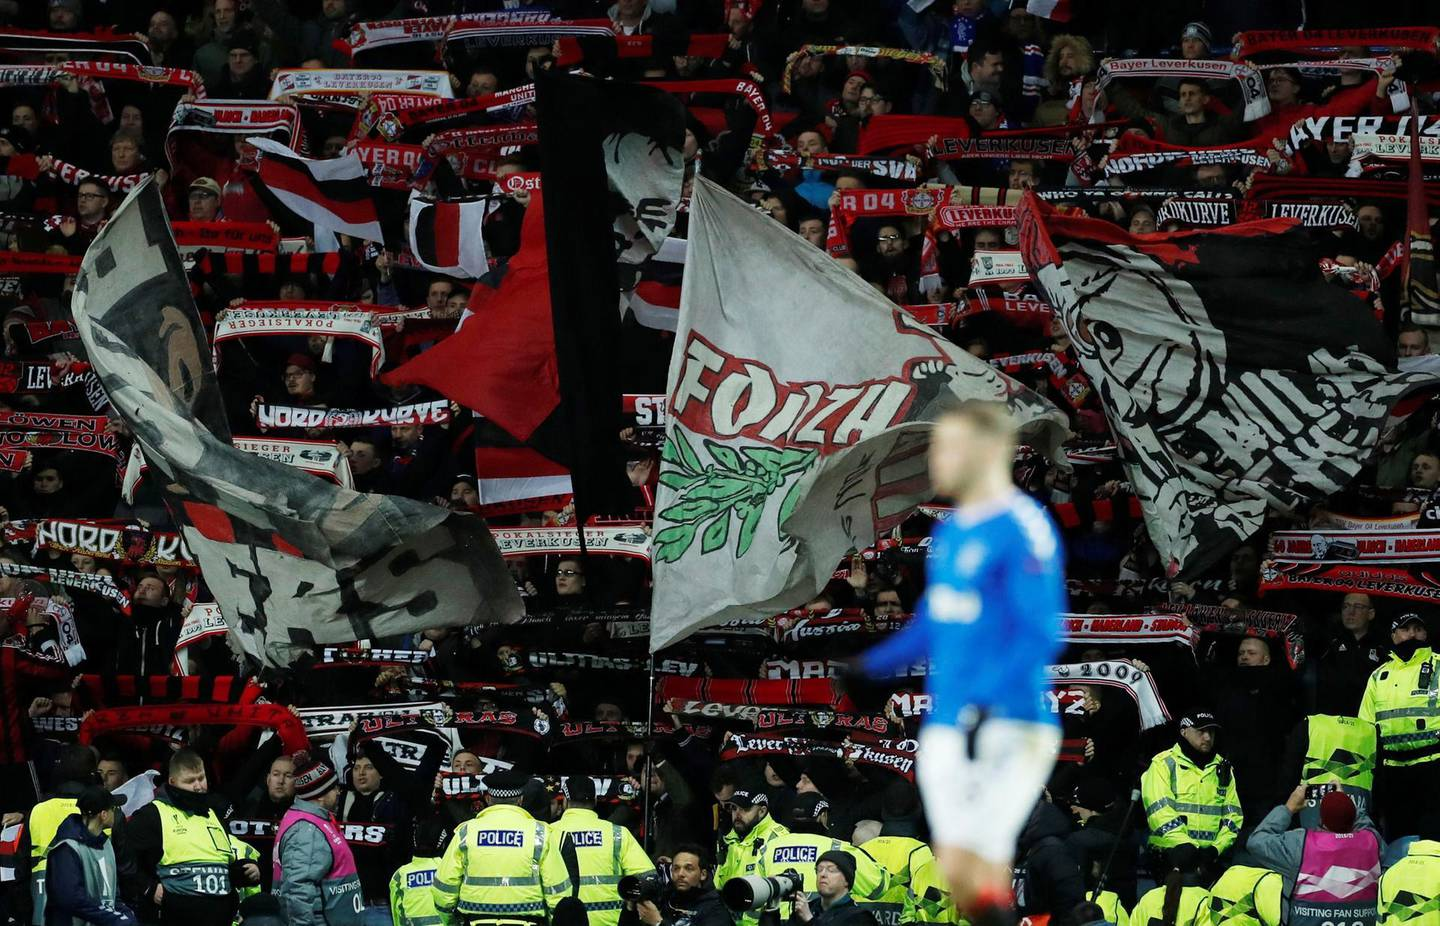 Soccer Football - Europa League - Round of 16 First Leg - Rangers v Bayer Leverkusen - Ibrox, Glasgow, Scotland, Britain - March 12, 2020  Bayer Leverkusen fans during the match       Action Images via Reuters/Lee Smith